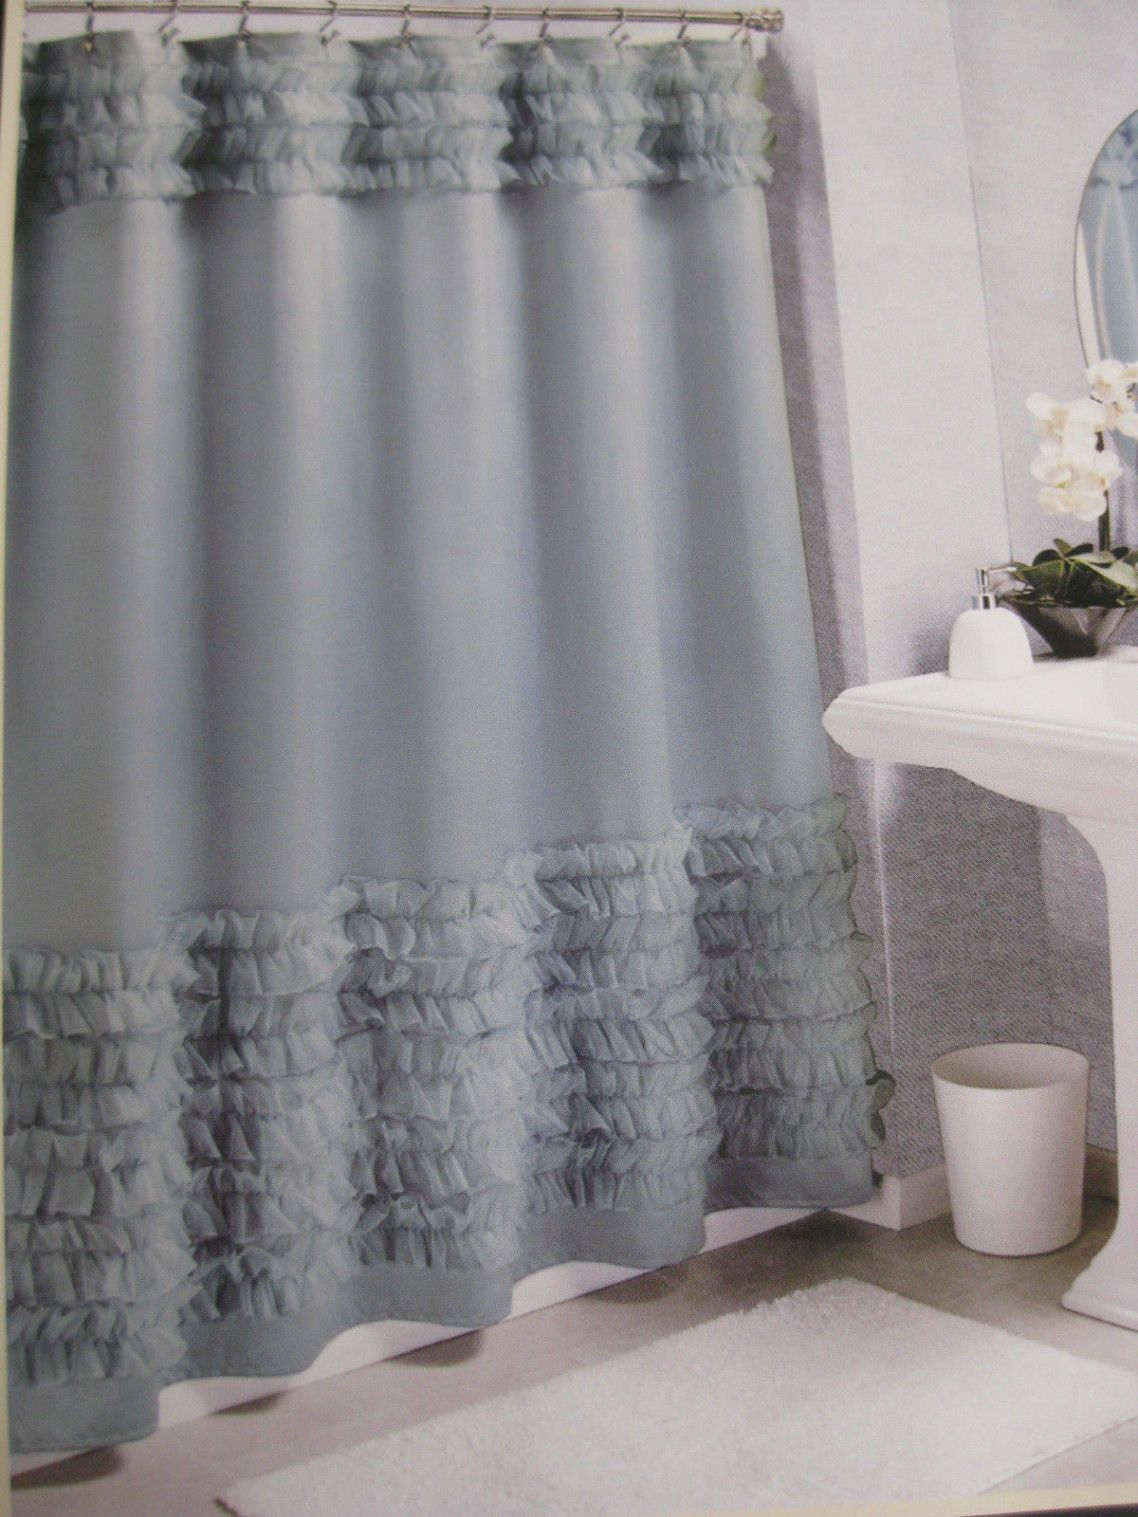 Awesome Gray Bathroom Shower Curtain With Top And Bottom Ruffle